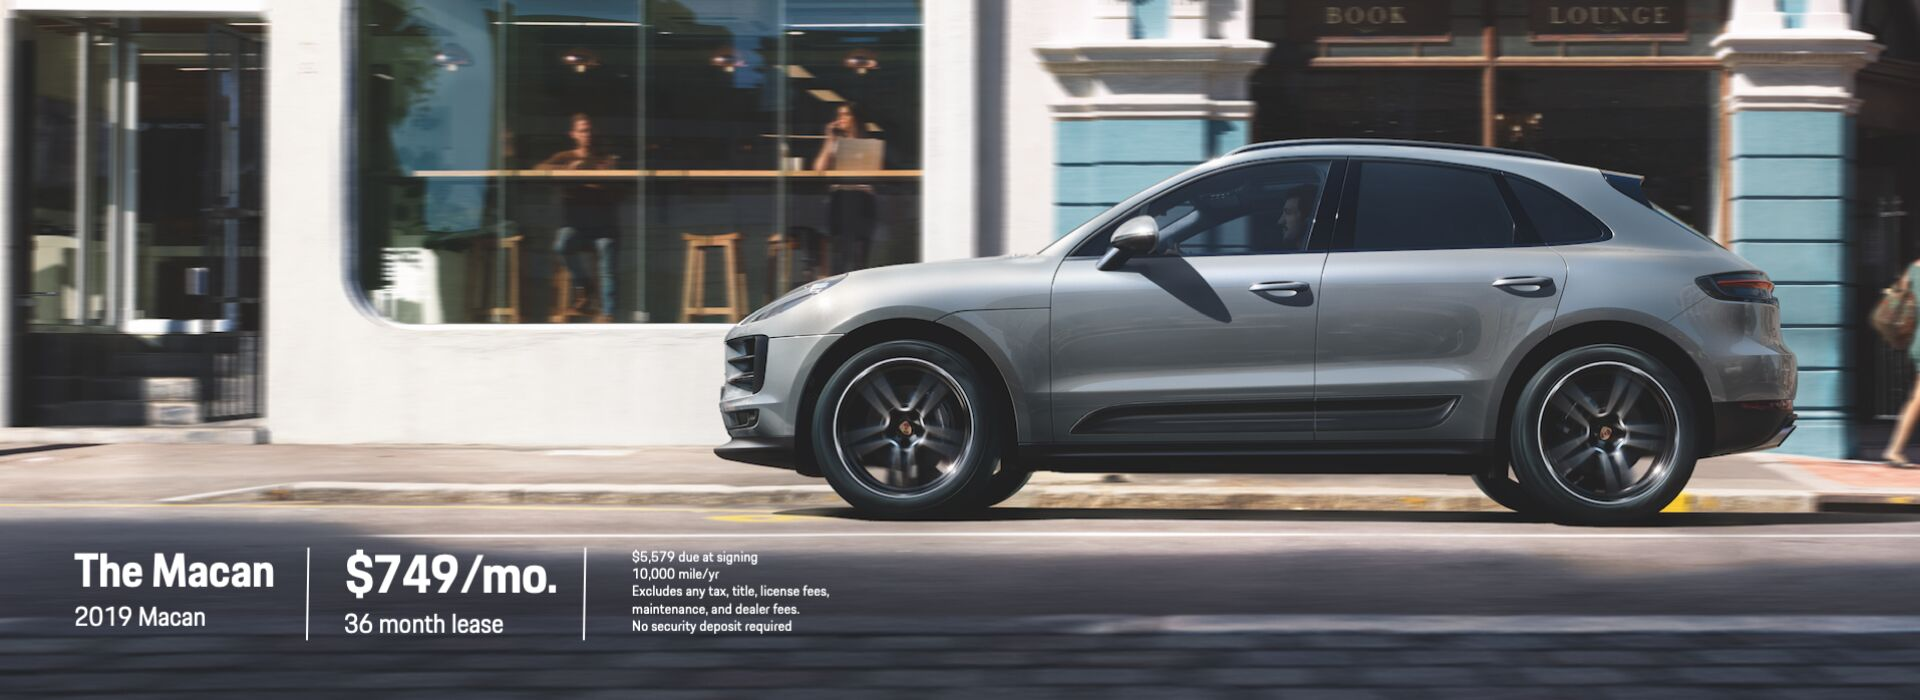 2019 Macan Lease